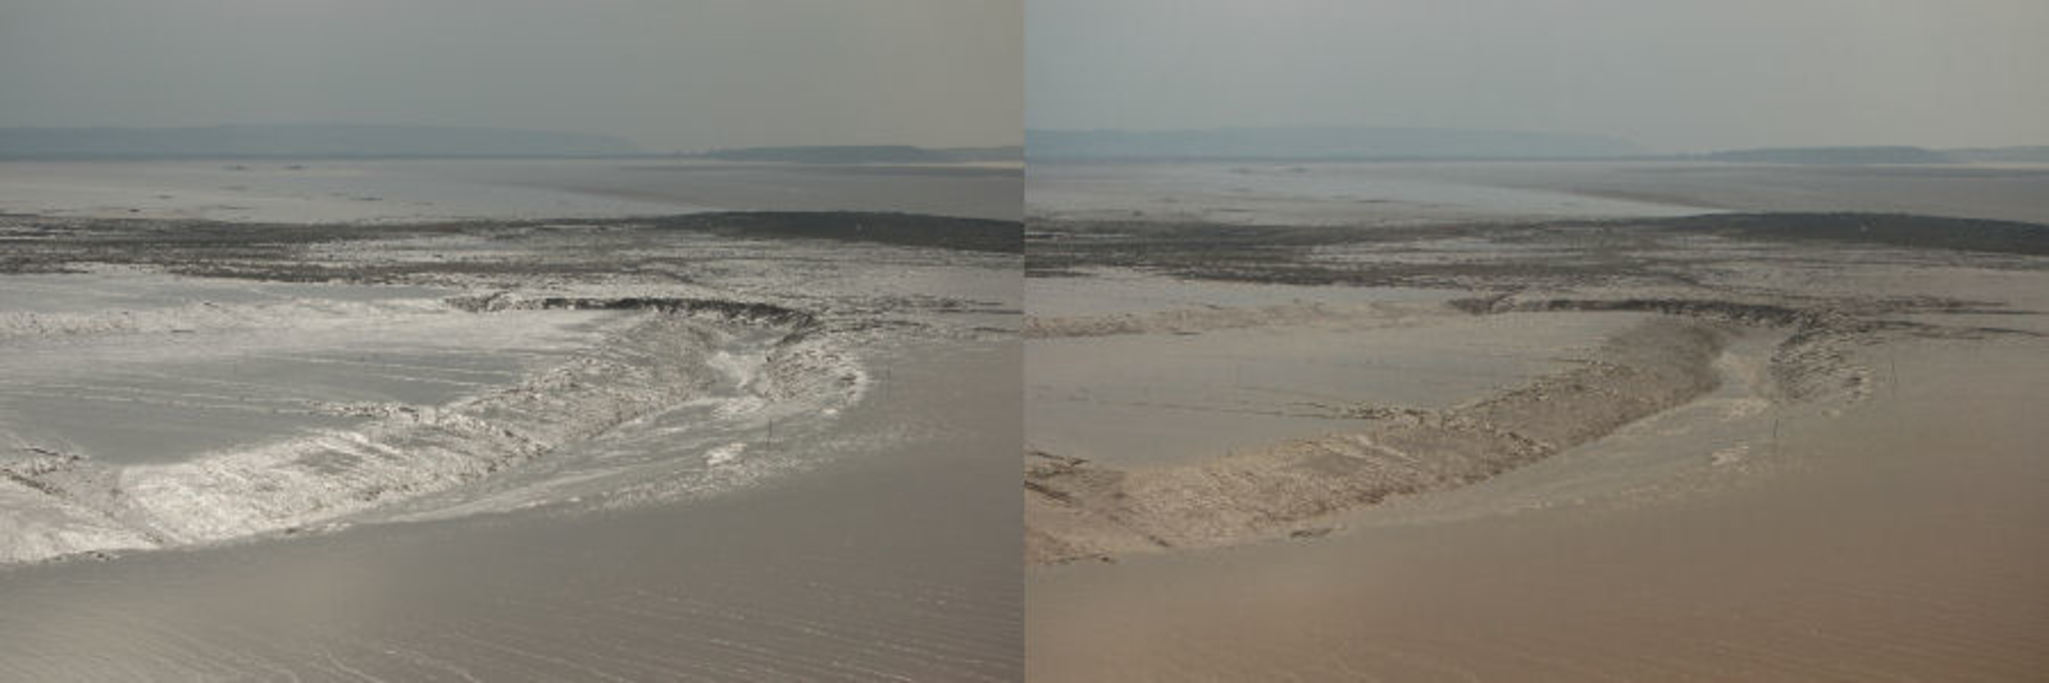 By rotating a polarising filter, we can block light of certain polarisation. This is how polarised sunglasses cut the glare from puddles and the ocean on a sunny day. - Image Credit:   Wikimedia   ,   CC BY-SA